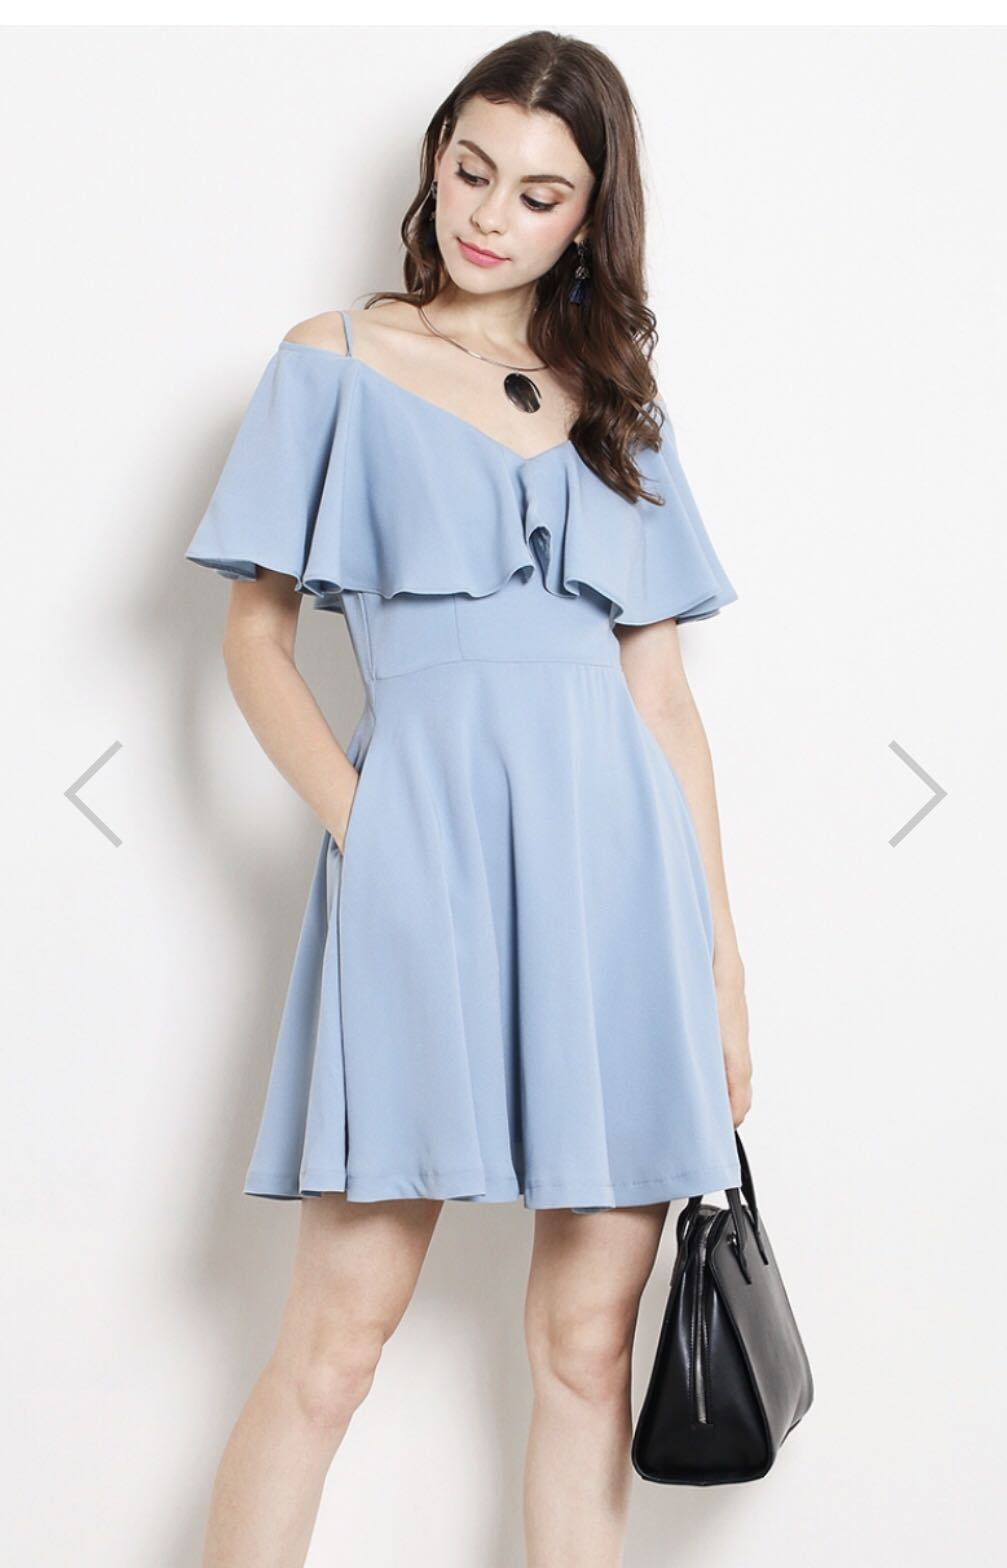 c99dfbeeb4 BNWT SSD Off shoulder dress with pockets